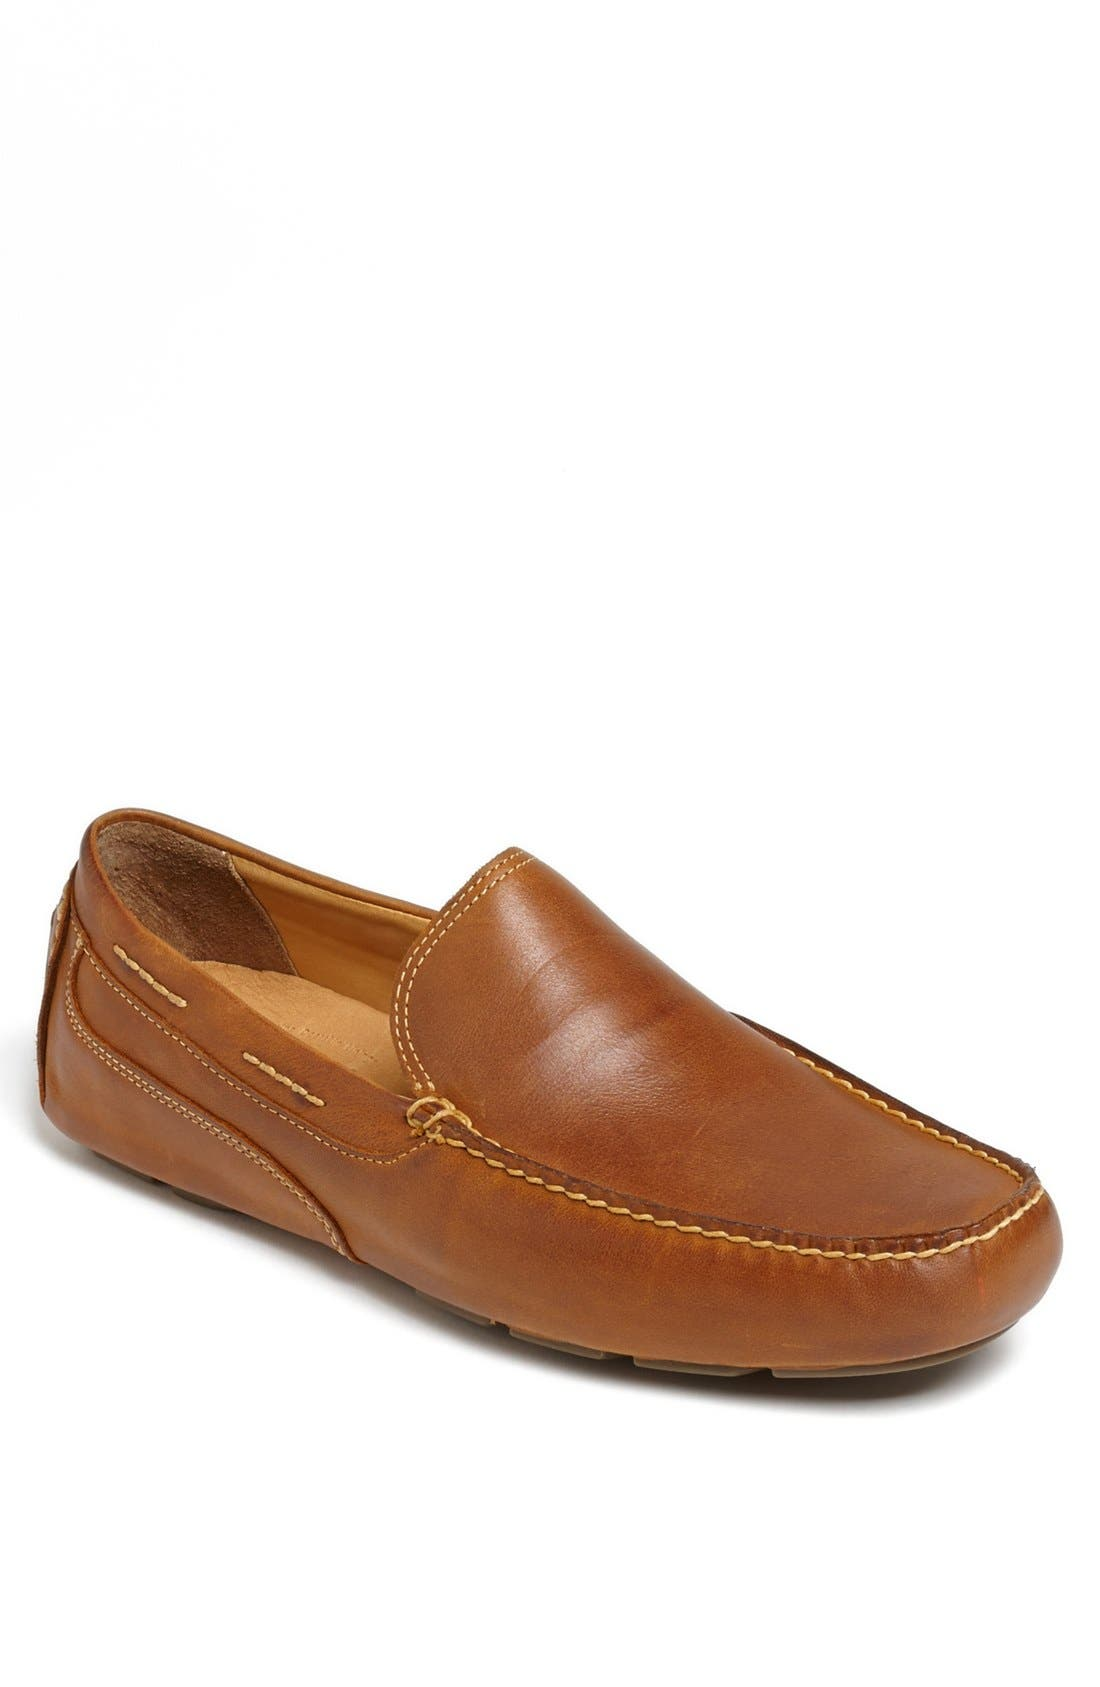 Main Image - Sperry 'Gold Cup - Kennebunk' Driving Shoe